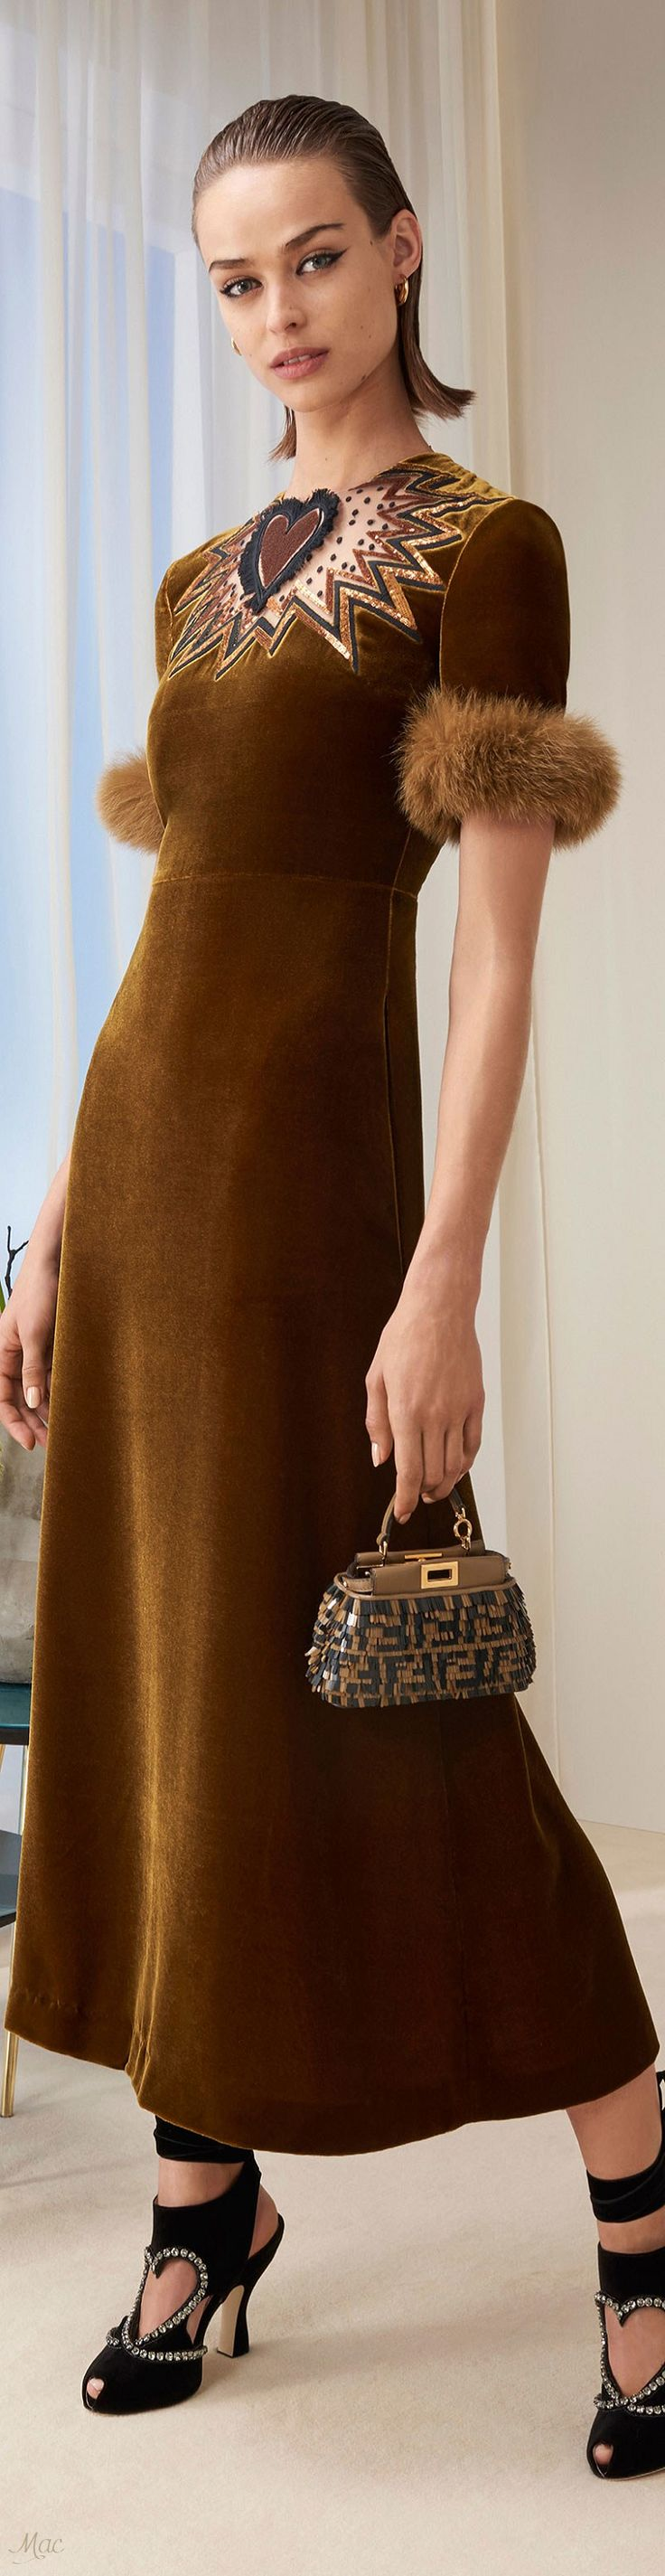 Pre-Fall 2018 Fendi Velvet will never go out of style. We are loving this caramel colored dress with furry trim and sequined designs. Update an old look with similar trim.